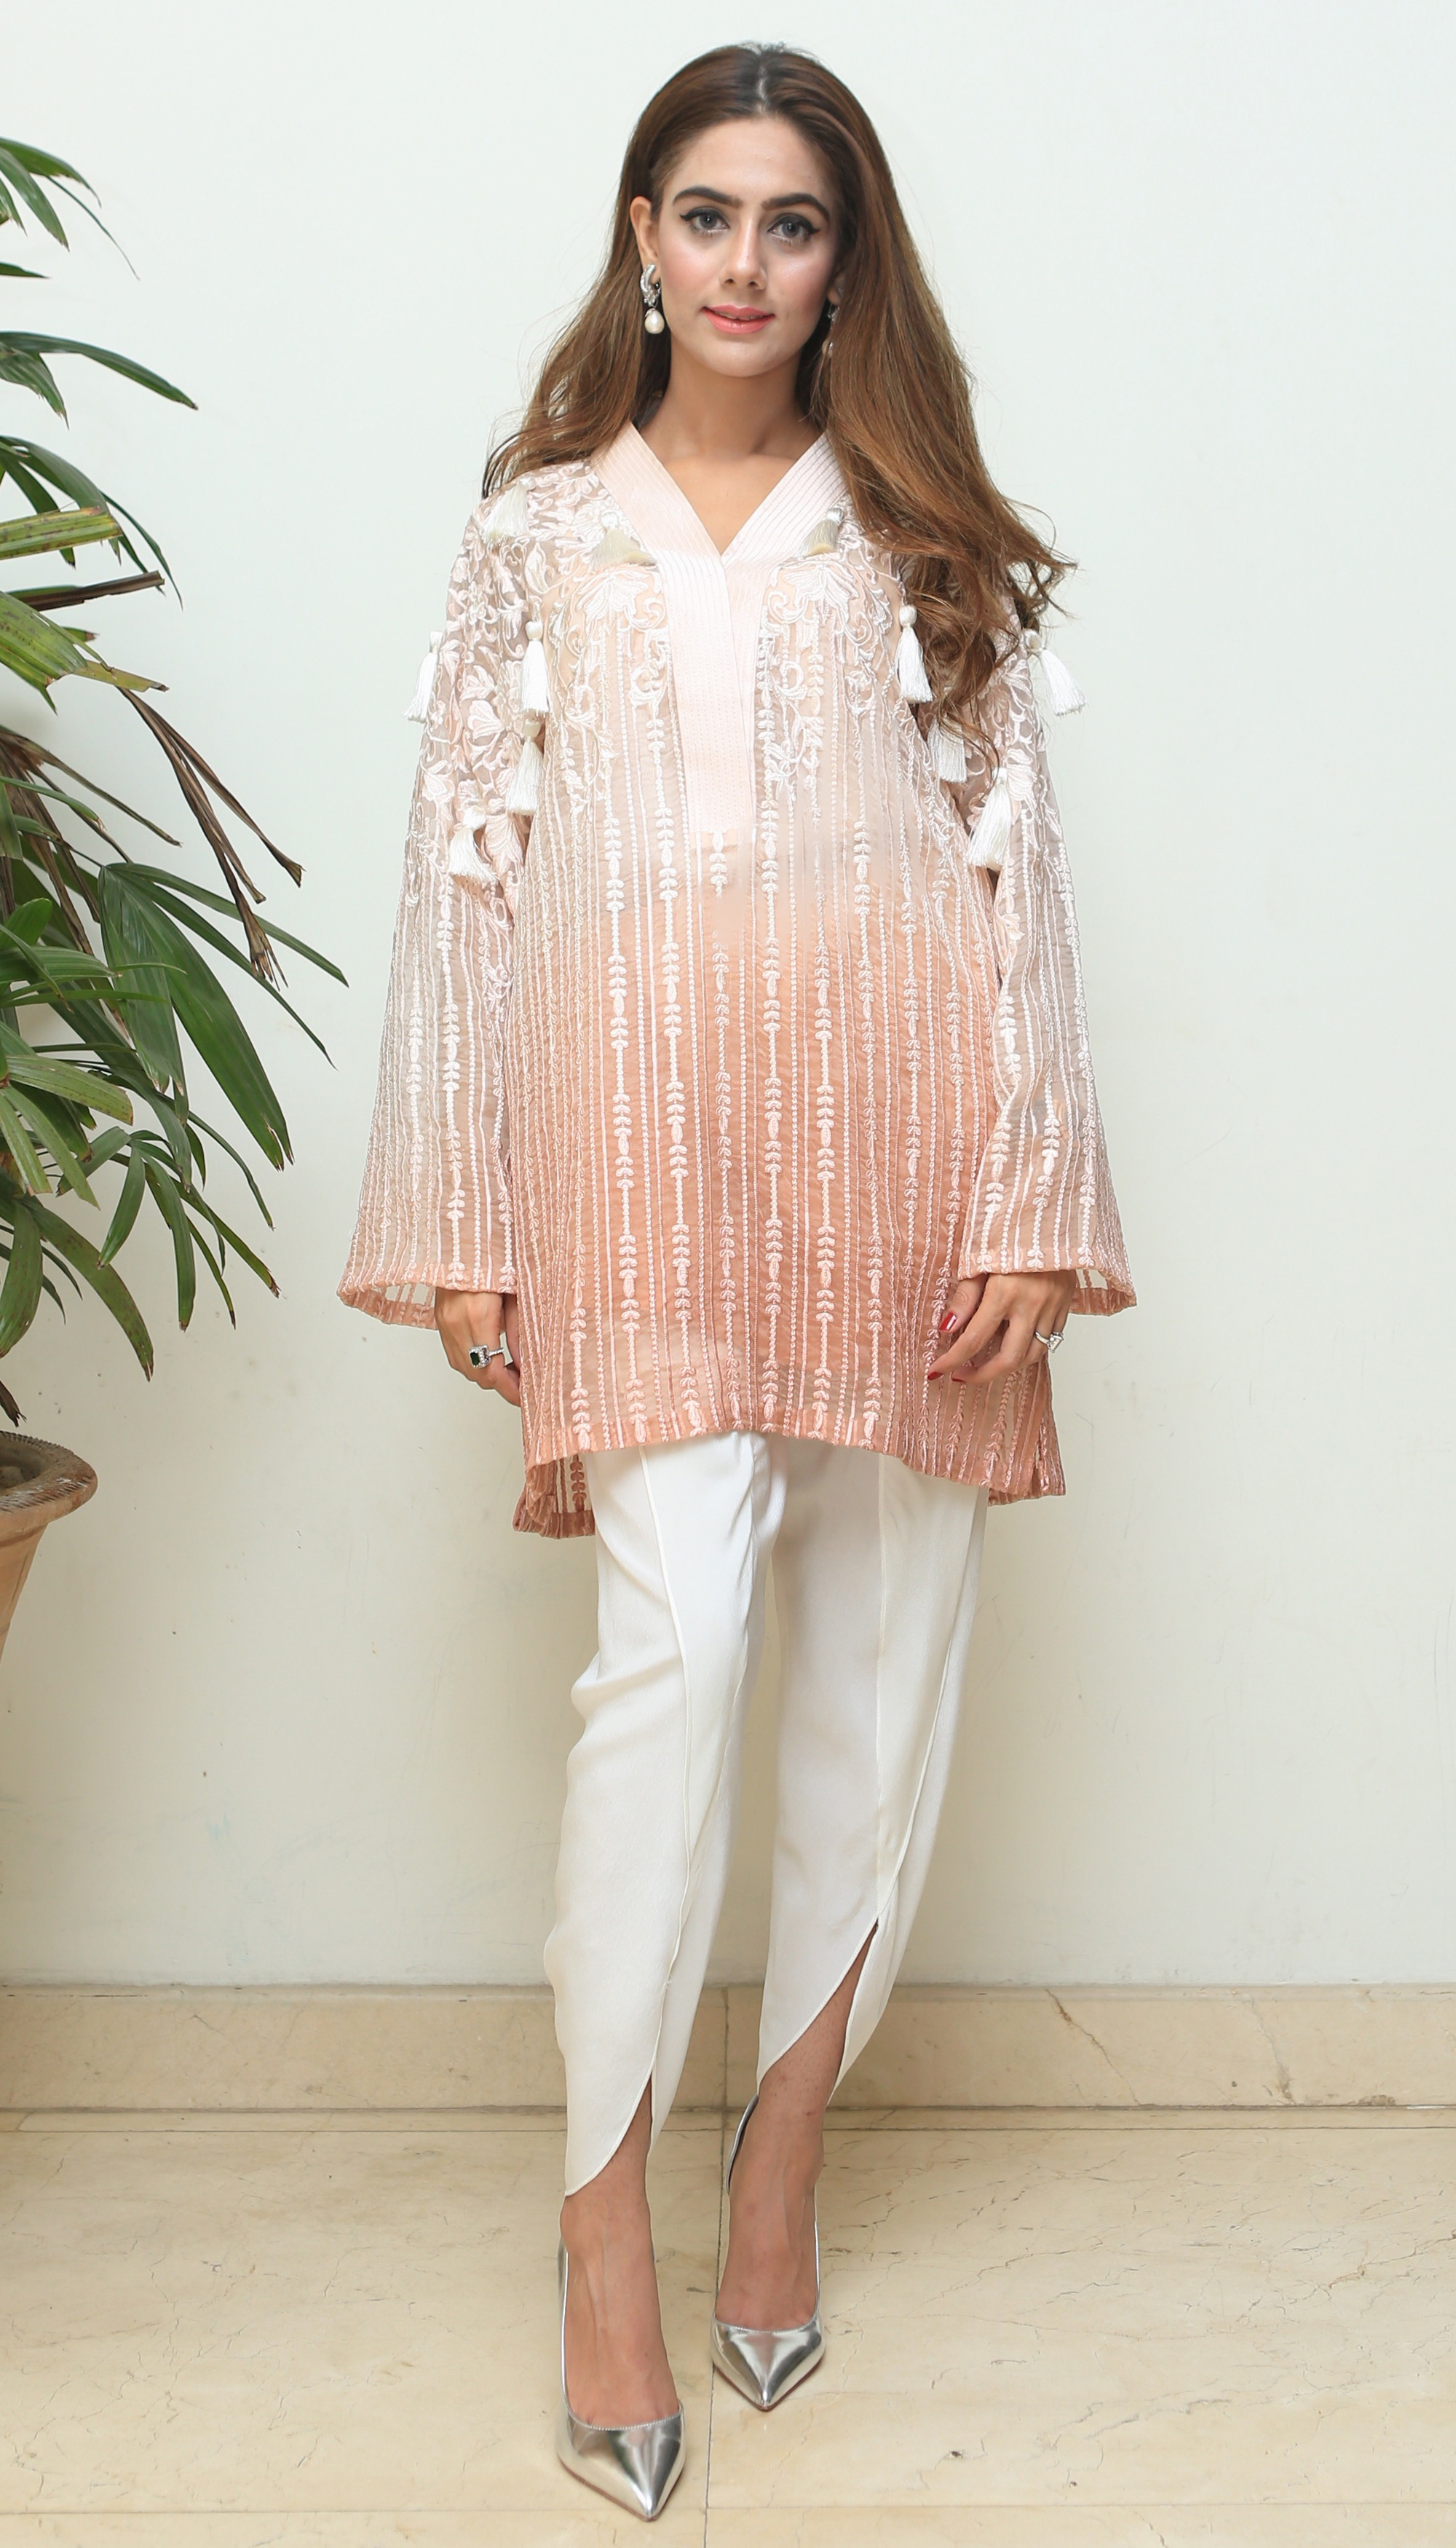 this ombre peach number with tassel detailing hots all the right notes